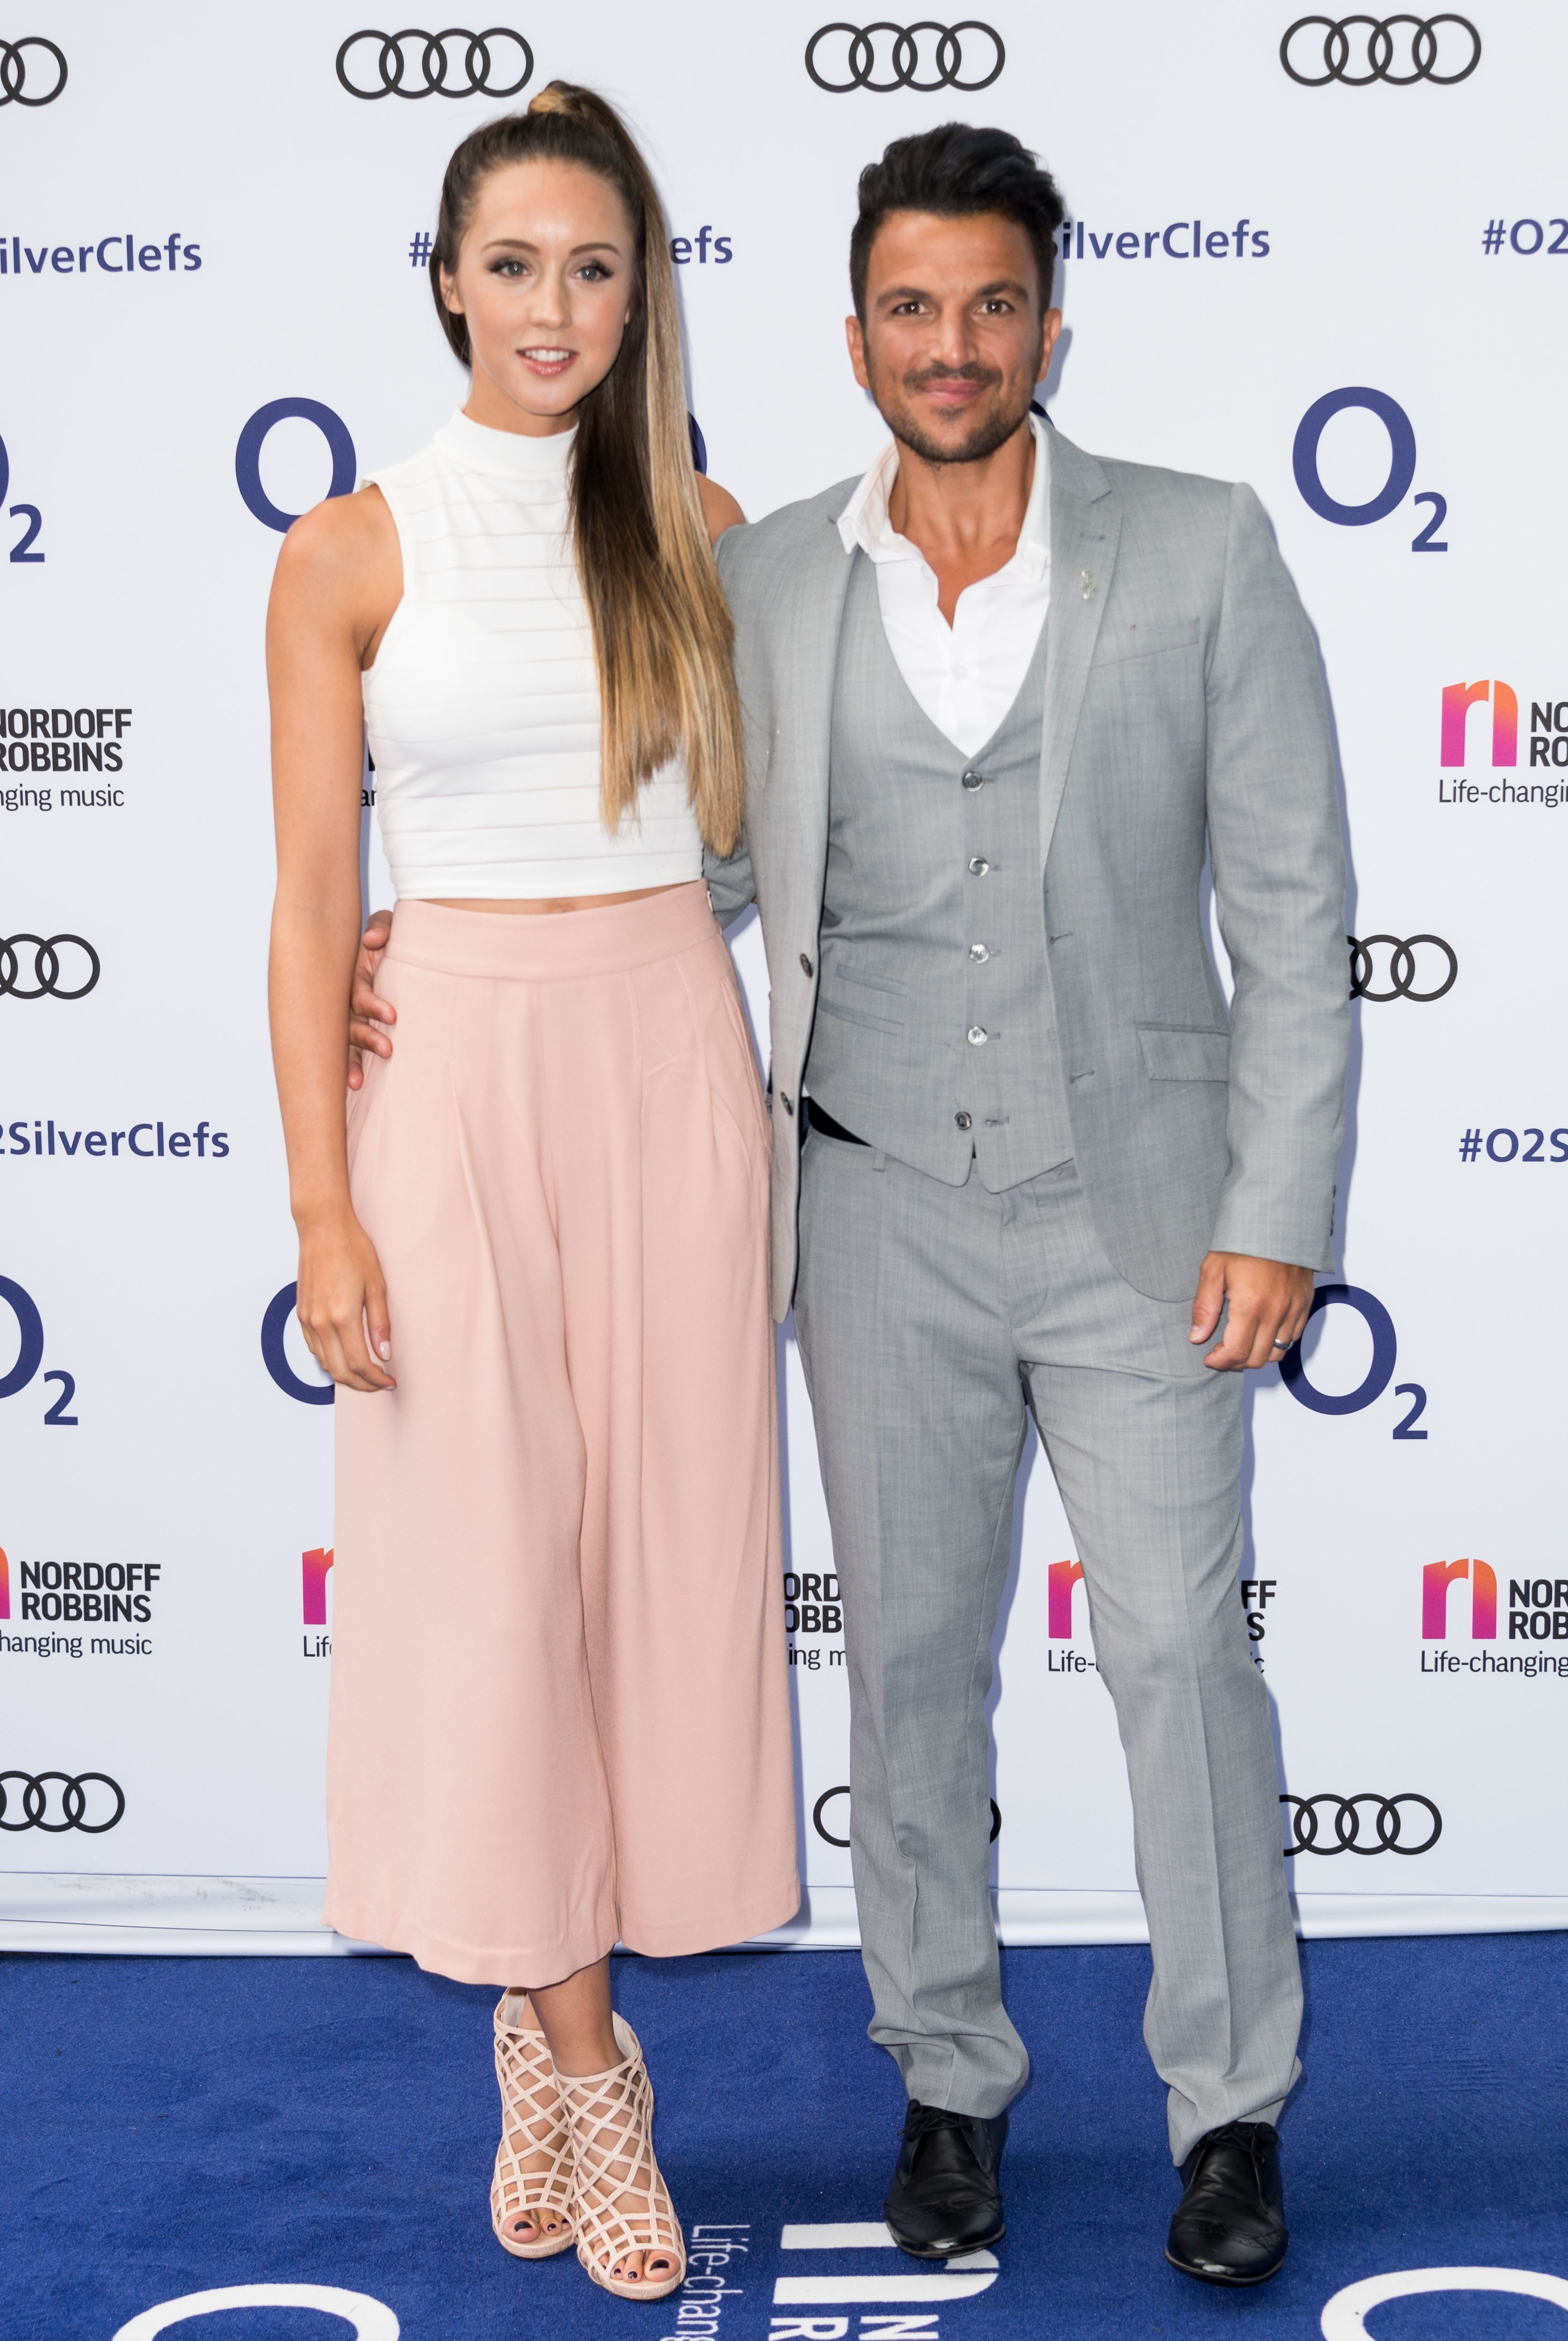 Peter Andre Promises Not To 'Torture' New Baby With His Own Music When Emily MacDonagh Gives